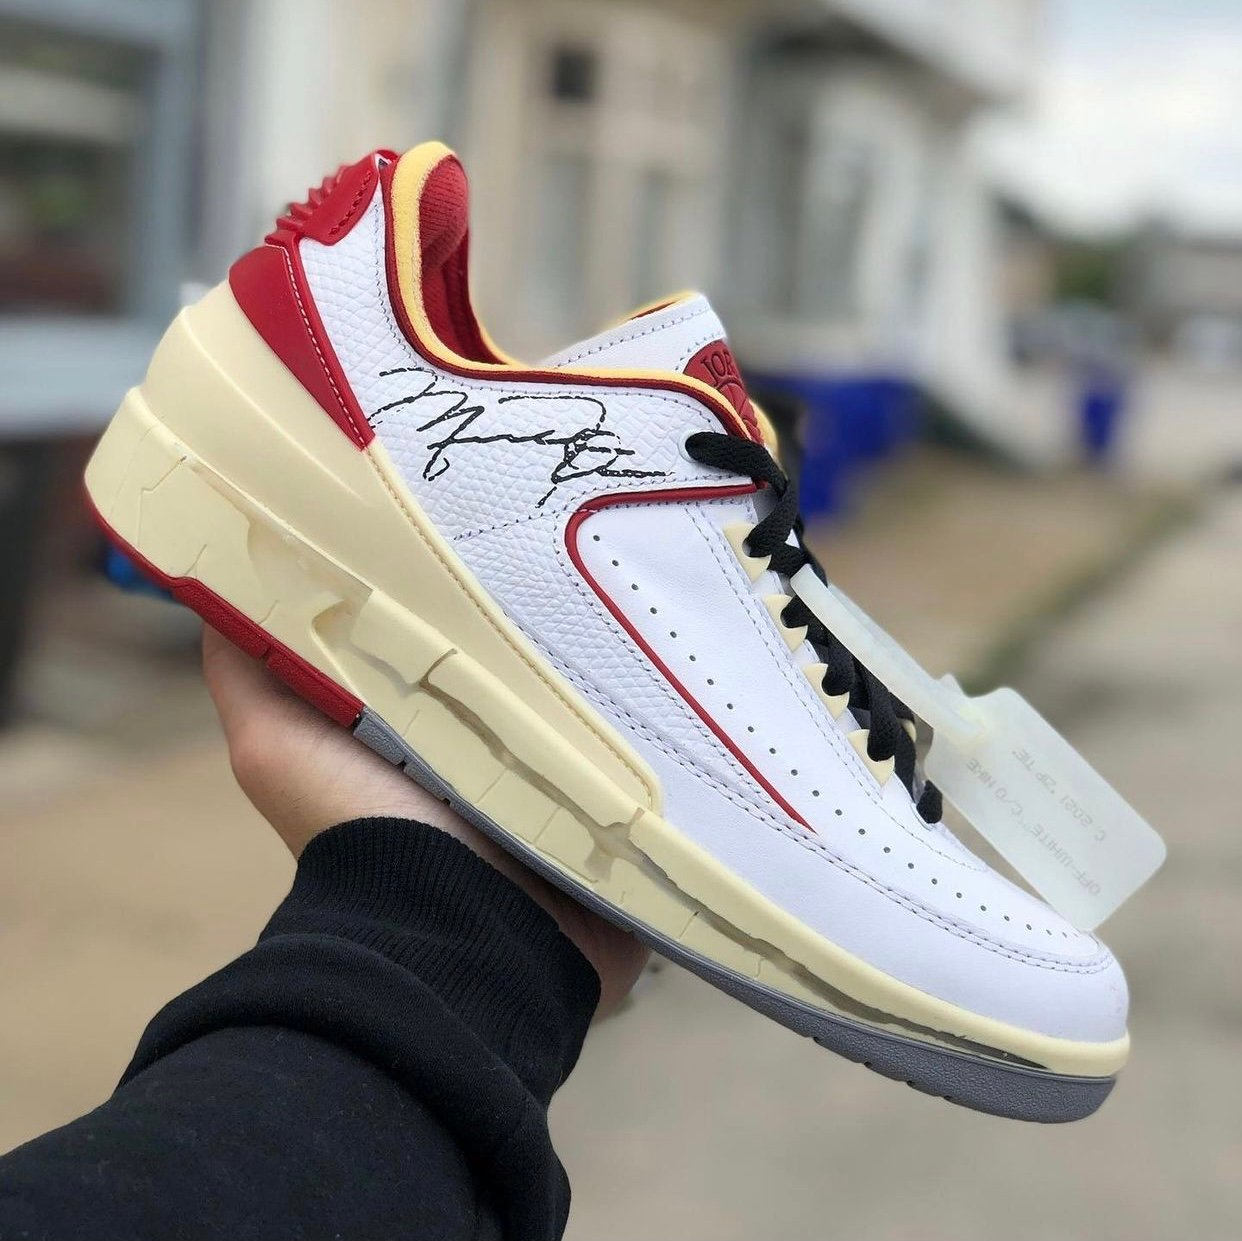 Off-White nike air max 4 grief and life quotes free White Red Off-White nike air max 4 grief and life quotes free White Red DJ4375-106 Release Date